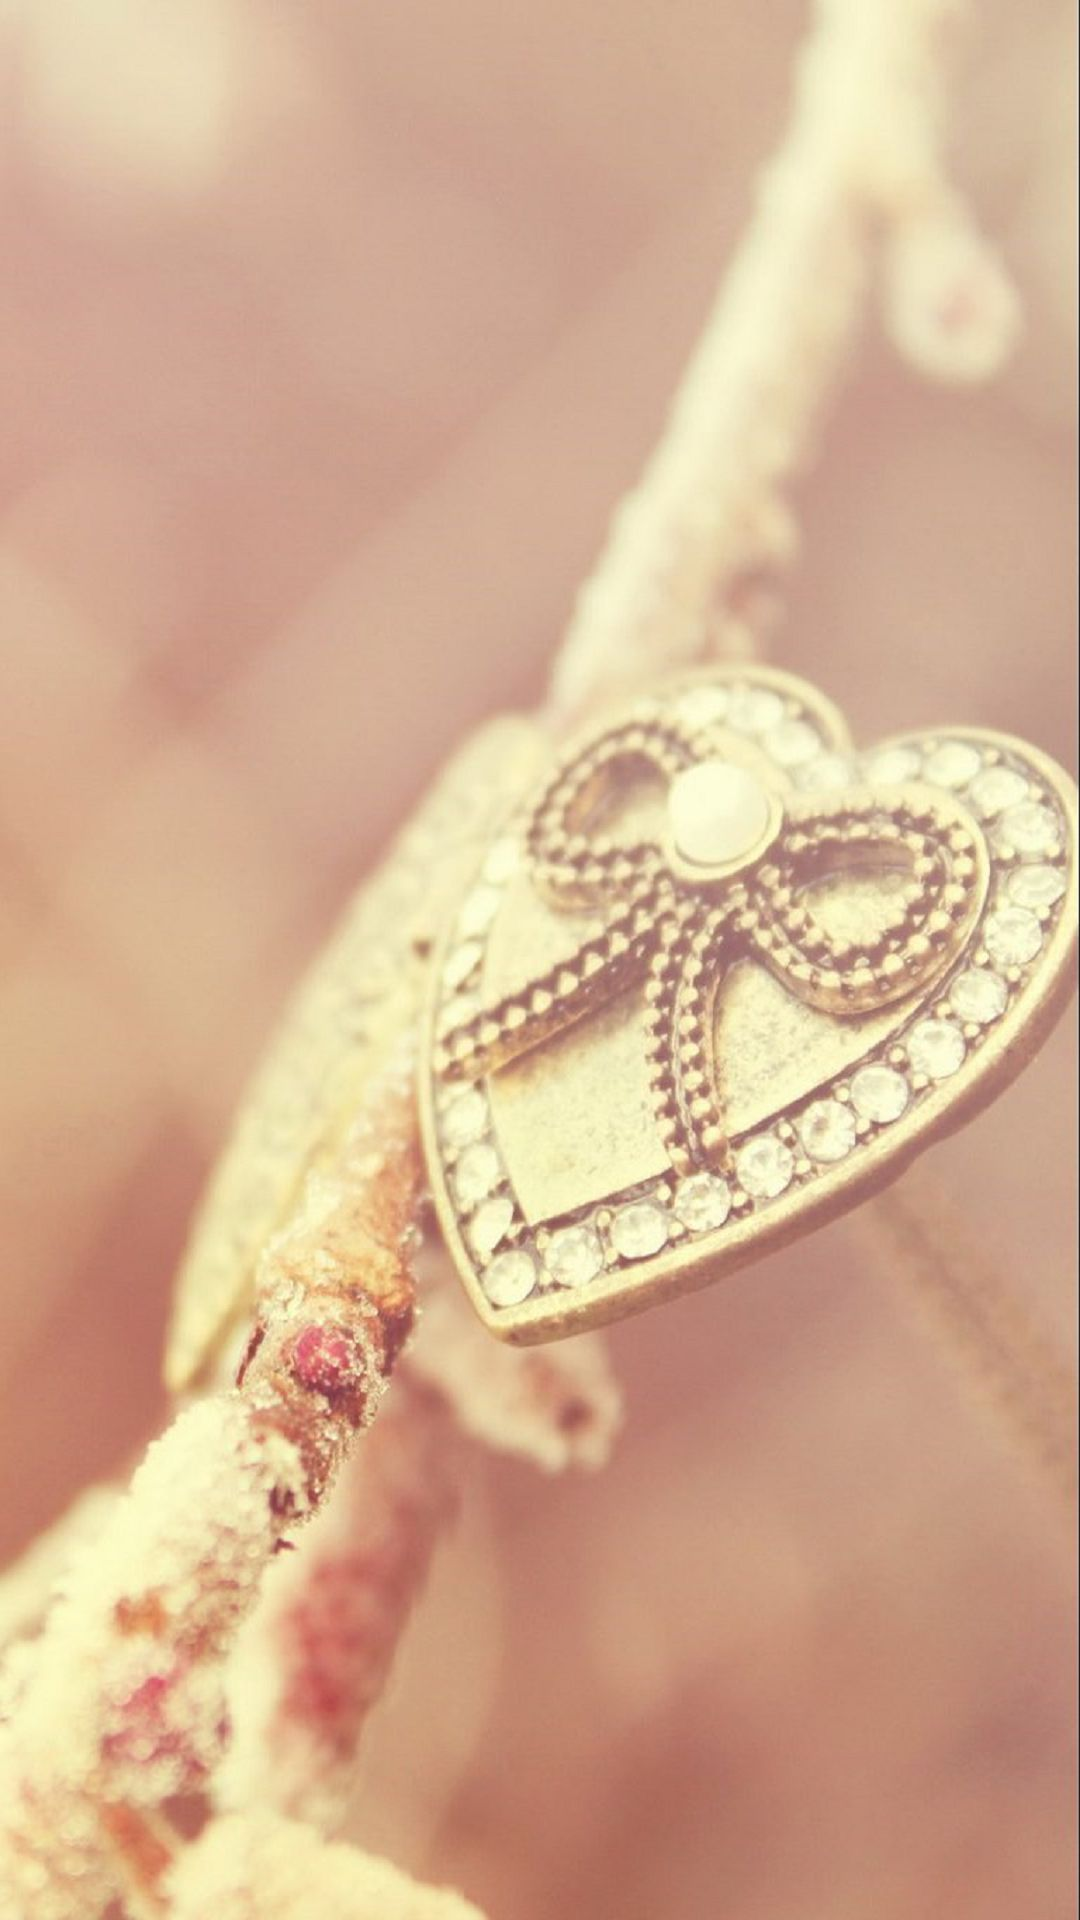 Necklace Gold Pink iPhone 6 Wallpaper Download | iPhone Wallpapers ...